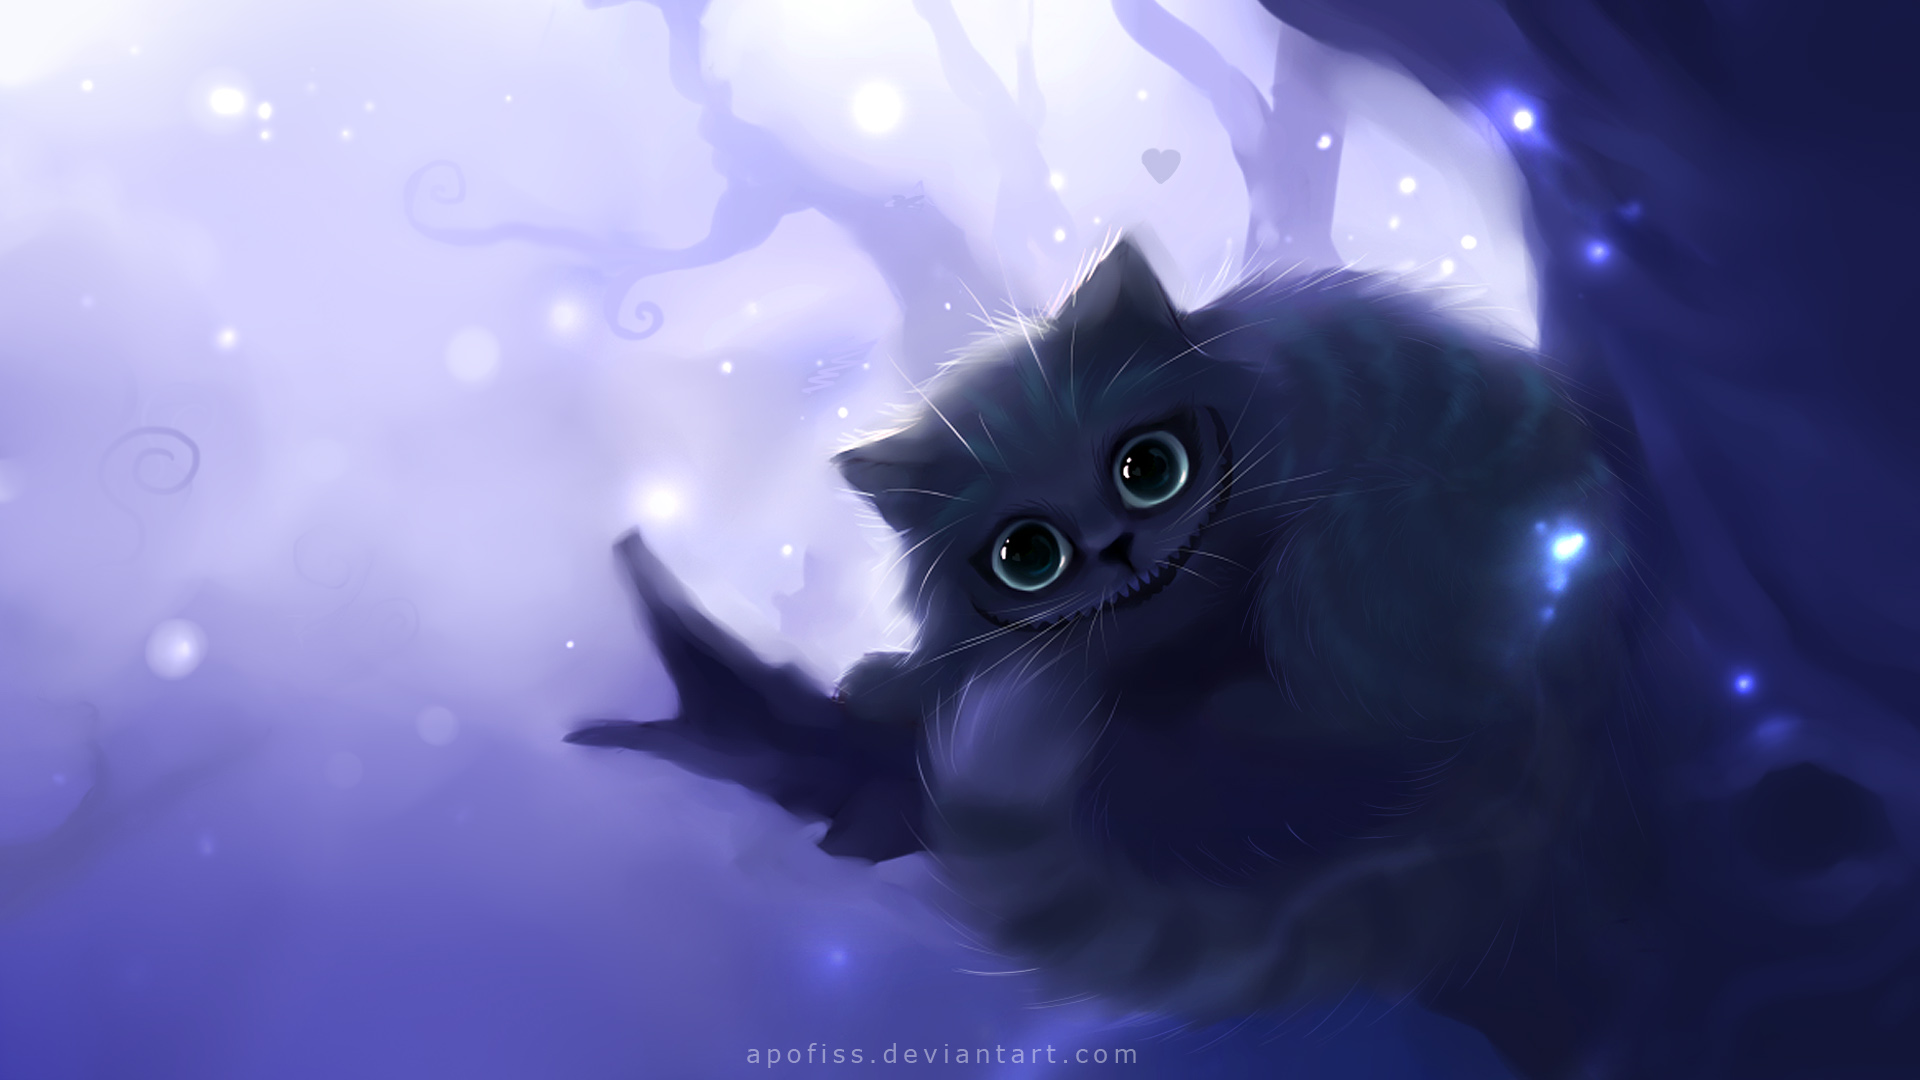 Cheshire cat wallpaper zerochan anime image board - Anime cat wallpaper ...